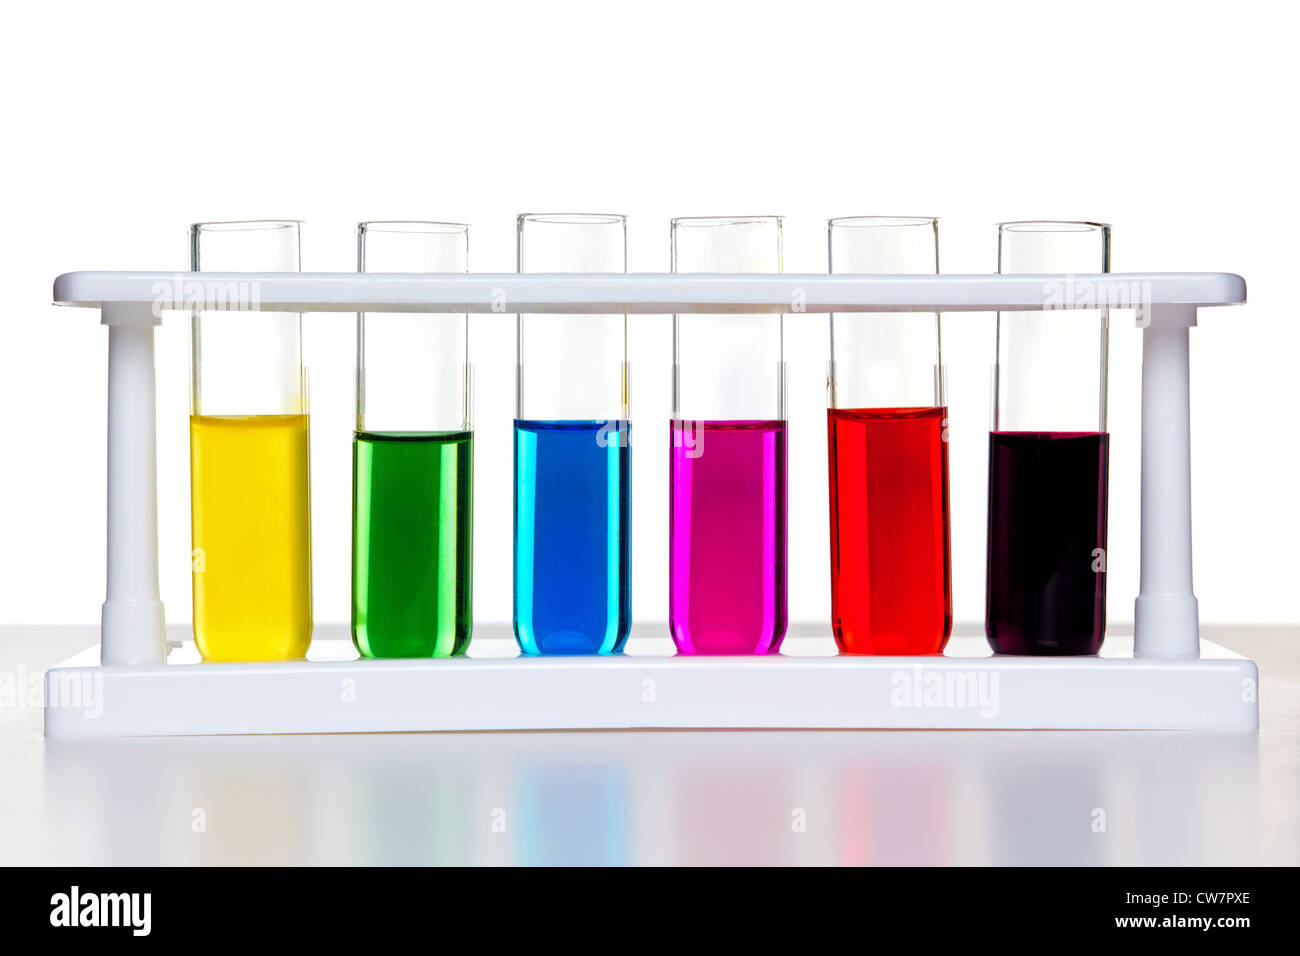 Photo of test tubes full of chemicals in a rack on a white background. - Stock Image